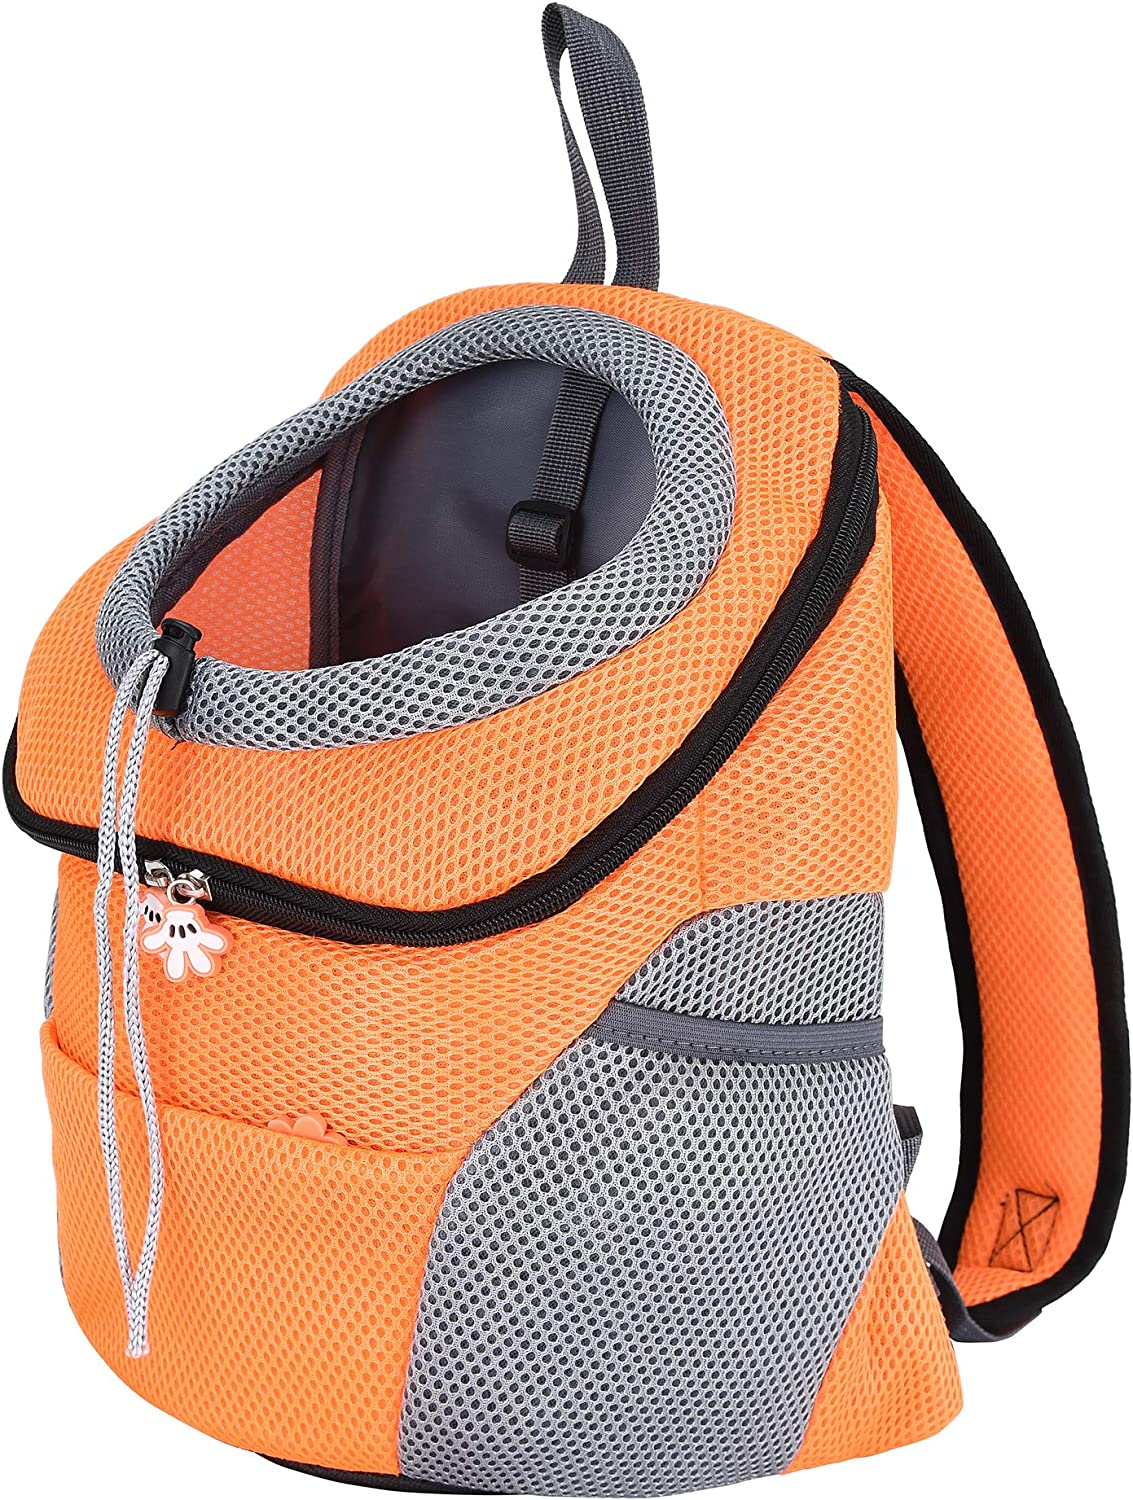 Ranking TOP5 Mile High Max 72% OFF Life Hiking Outdoor Carrier Kitty Pup Pet Backpack